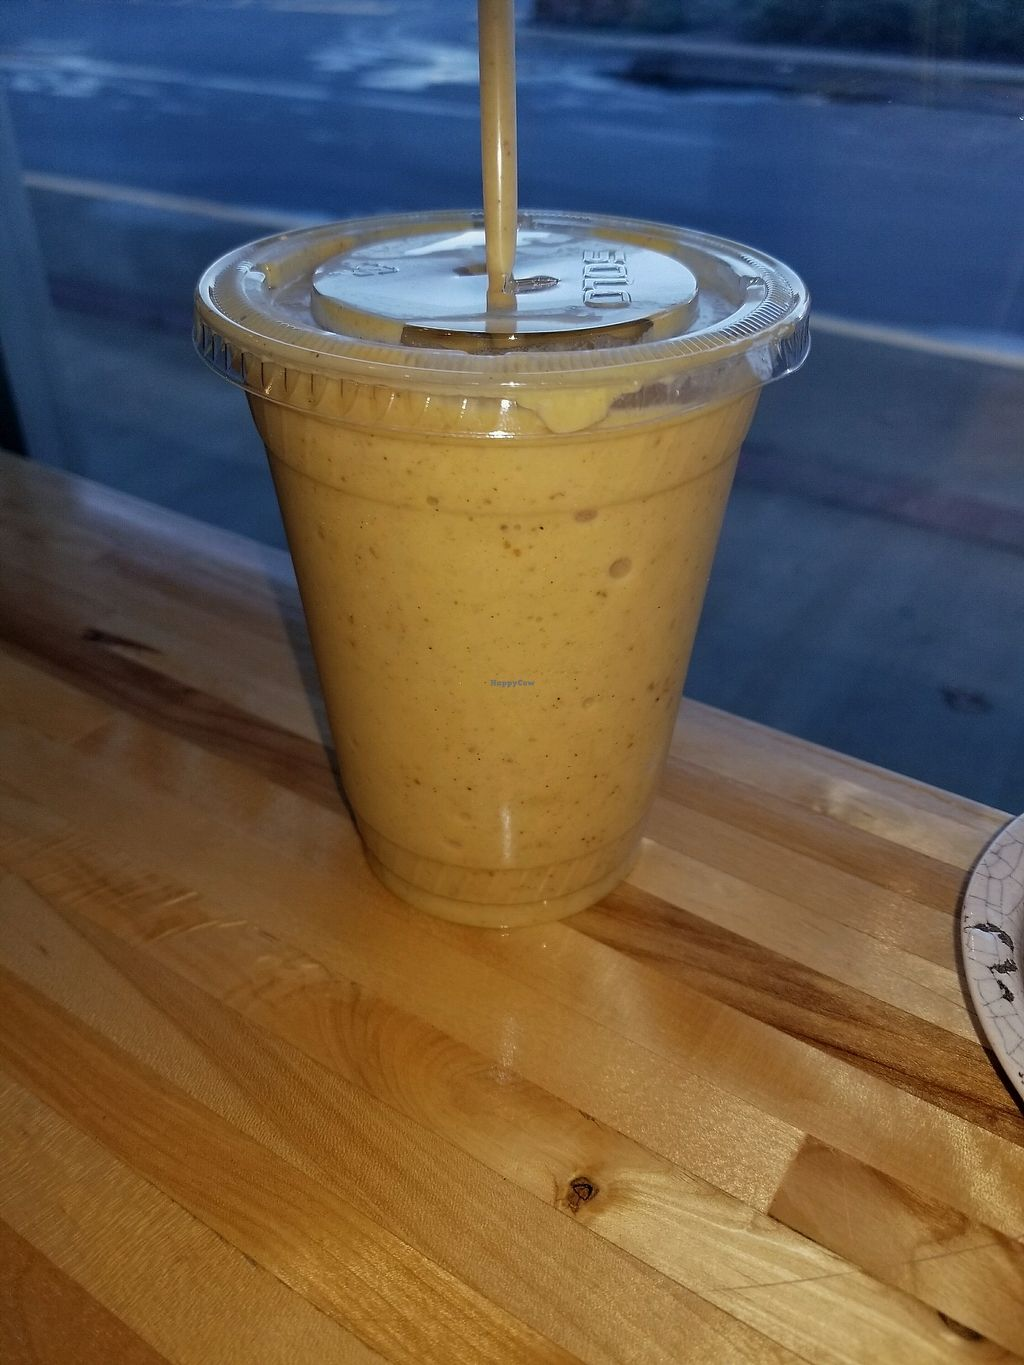 """Photo of Mountain Juicery  by <a href=""""/members/profile/PixieMel"""">PixieMel</a> <br/>Pumpkin Pie Smoothie <br/> November 7, 2017  - <a href='/contact/abuse/image/103871/323098'>Report</a>"""